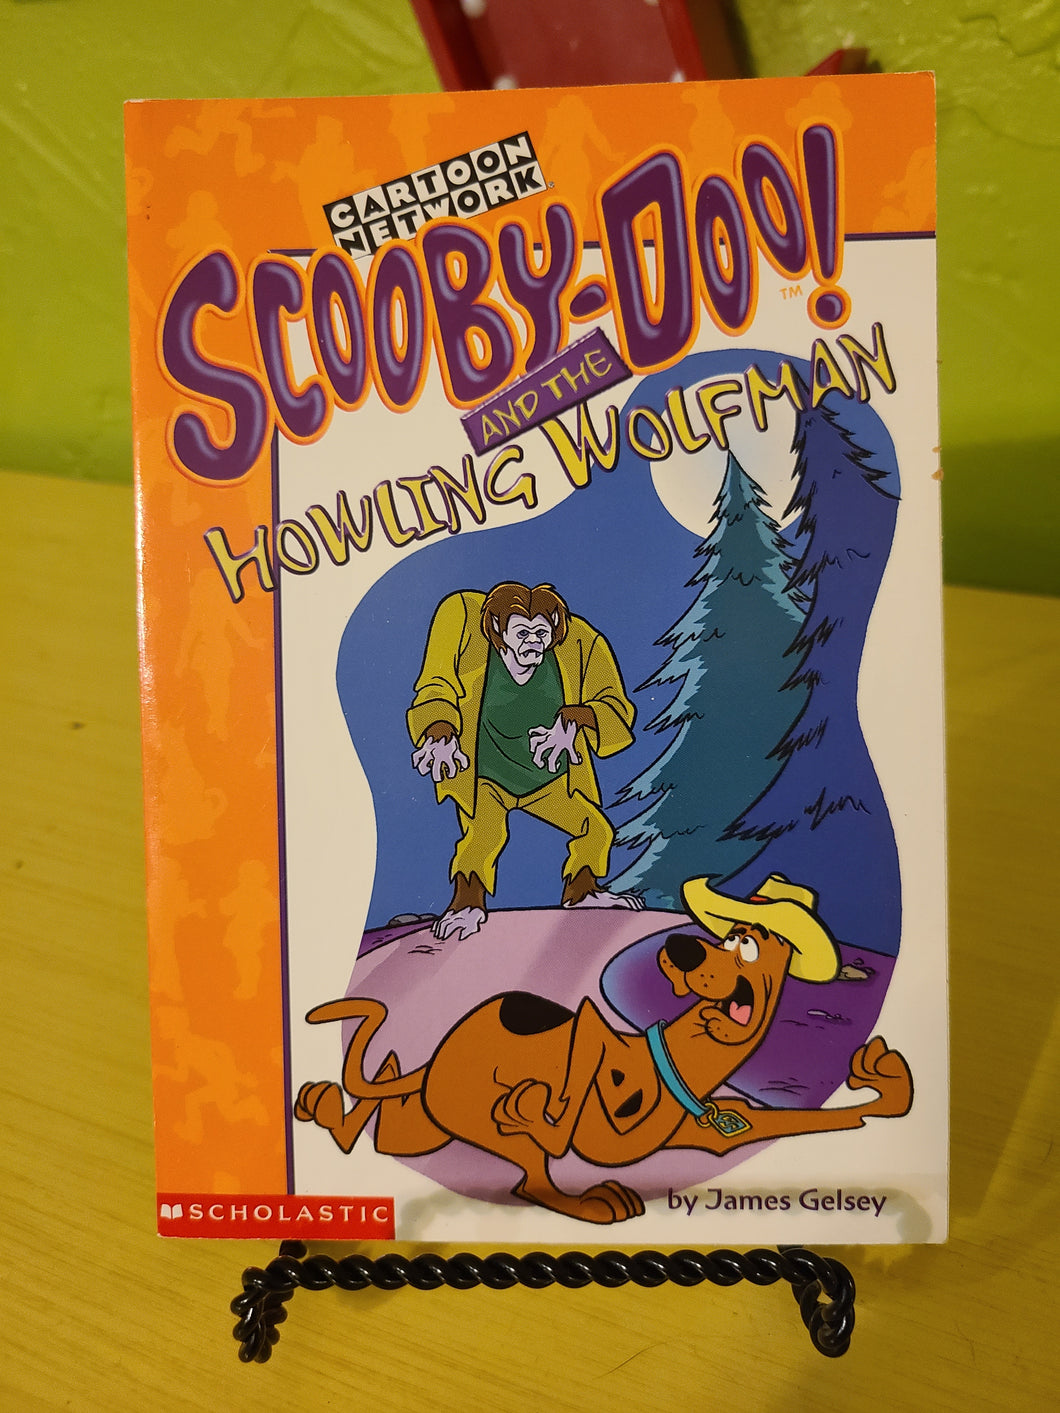 Scooby-Doo: and the Howling Wolfman